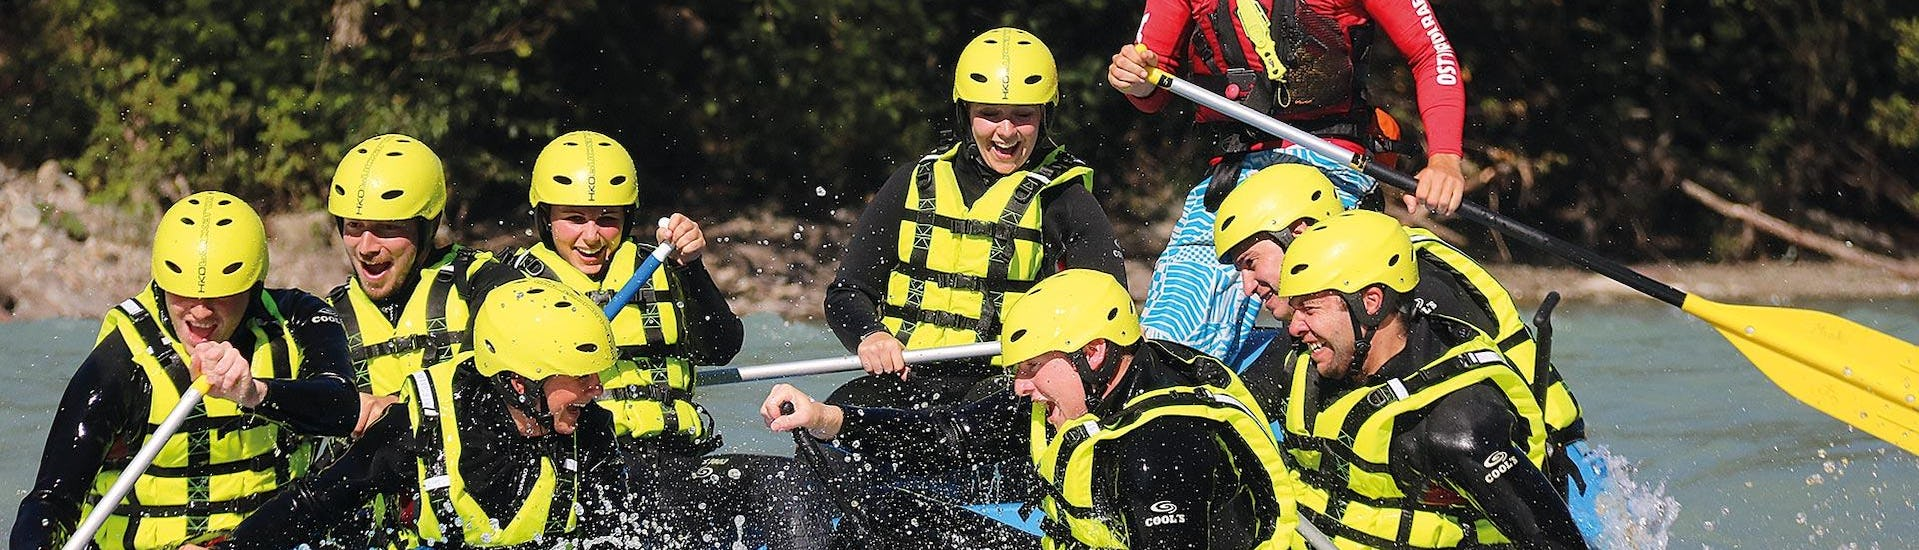 rafting-on-the-isel-river-for-families-cam-cool-hero